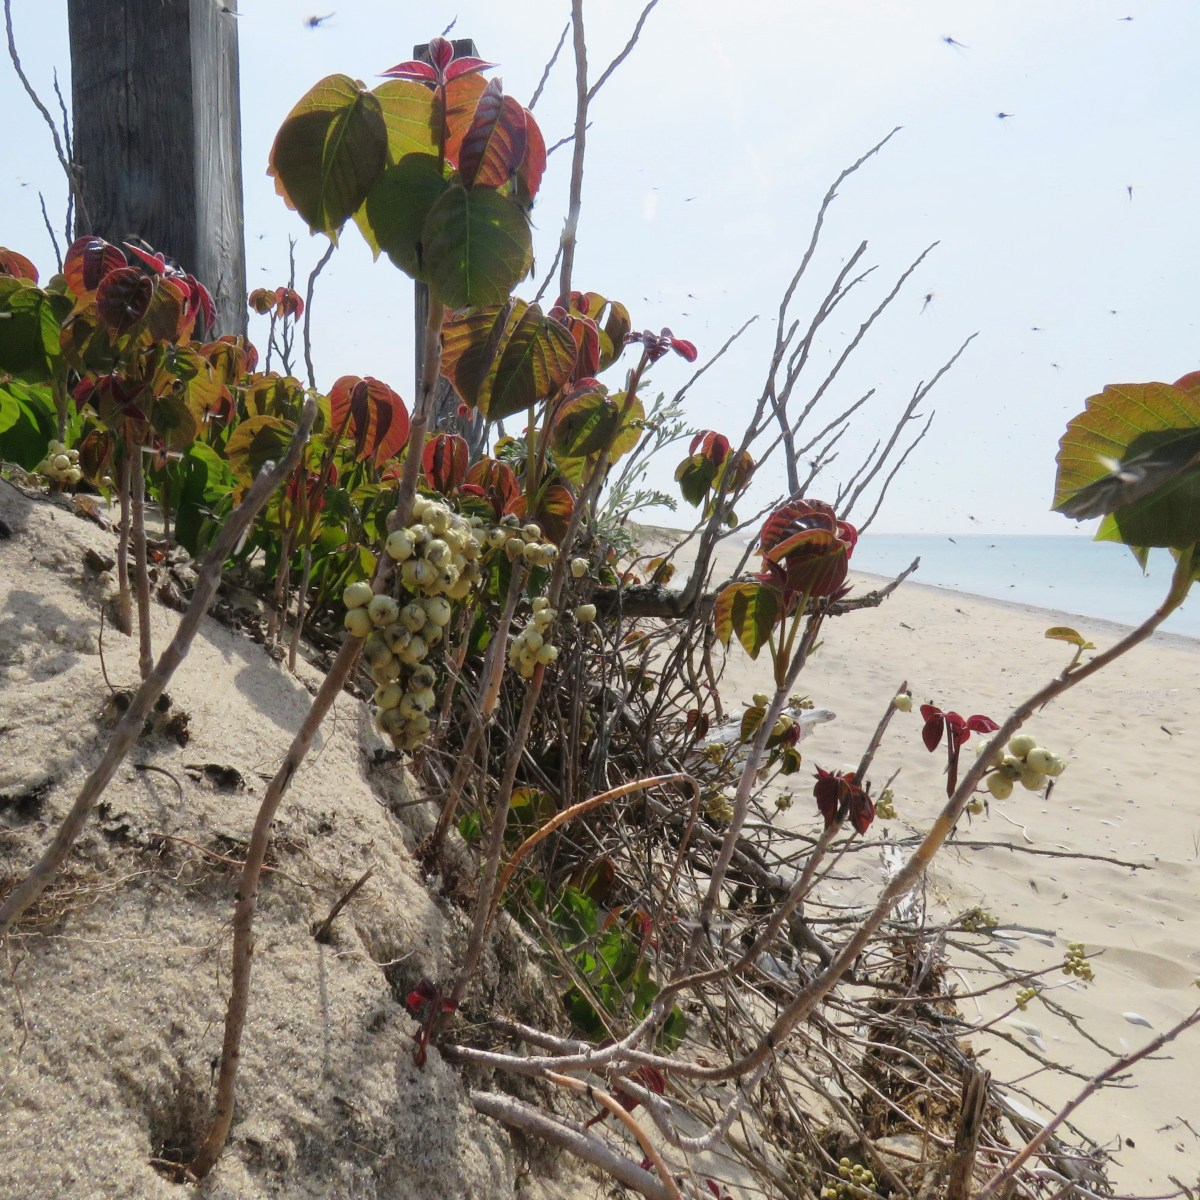 Poison ivy growing in beach sand